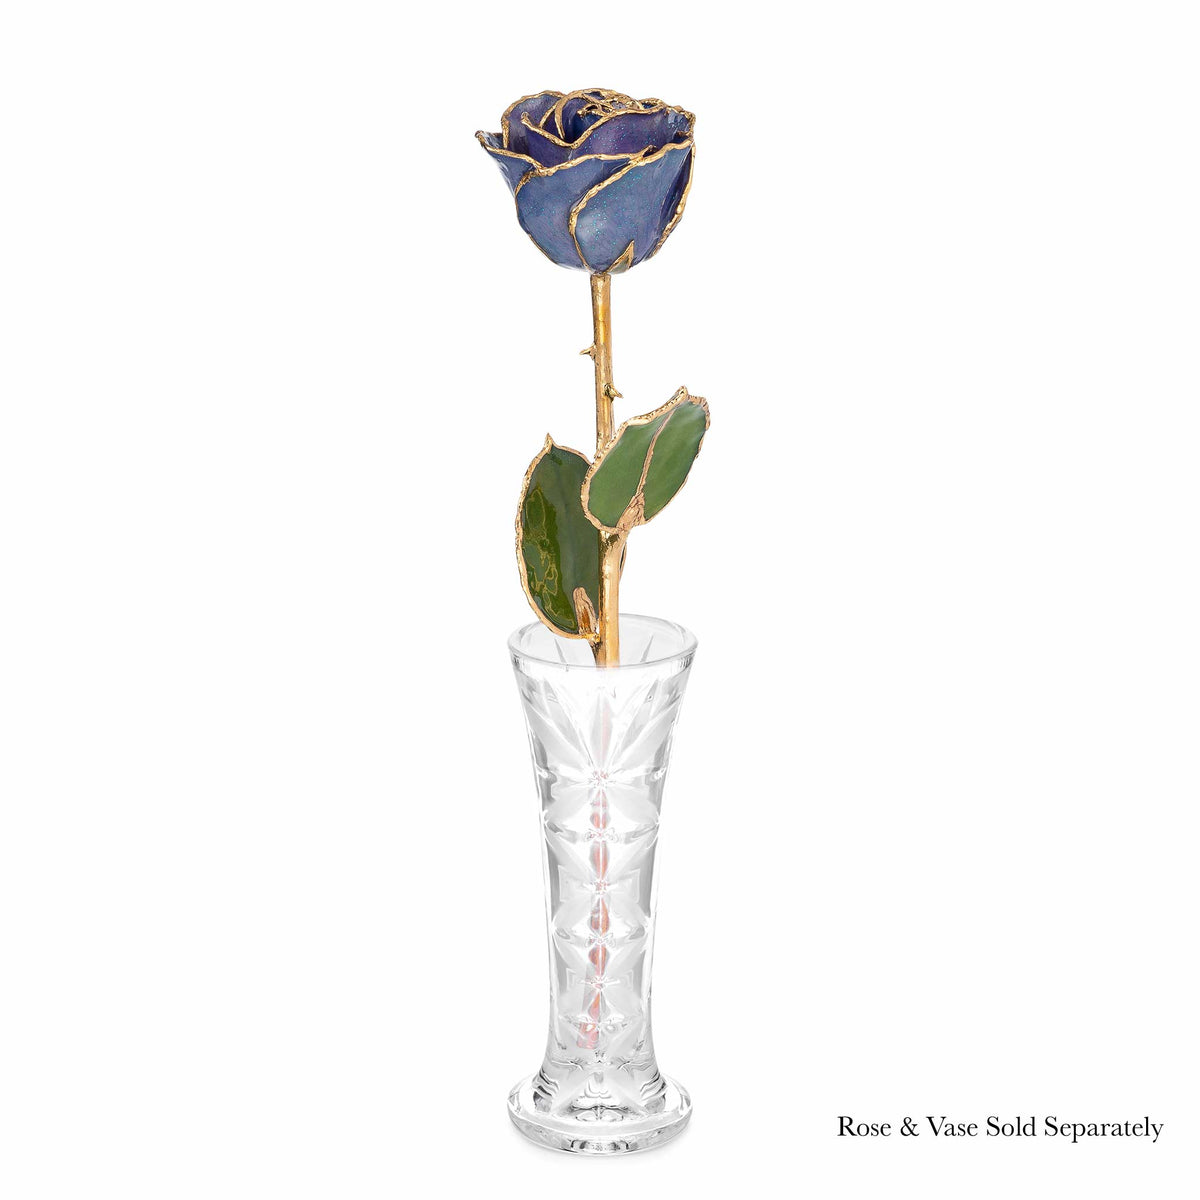 24K Gold Trimmed Forever Rose with Tanzanite (Purple, Lavender, and Blue color blend) Petals with Sapphire Blue Suspended Sparkles. View of Stem, Leaves, and Rose Petals and Showing Detail of Gold Trim Shown with Optional Crystal Vase.